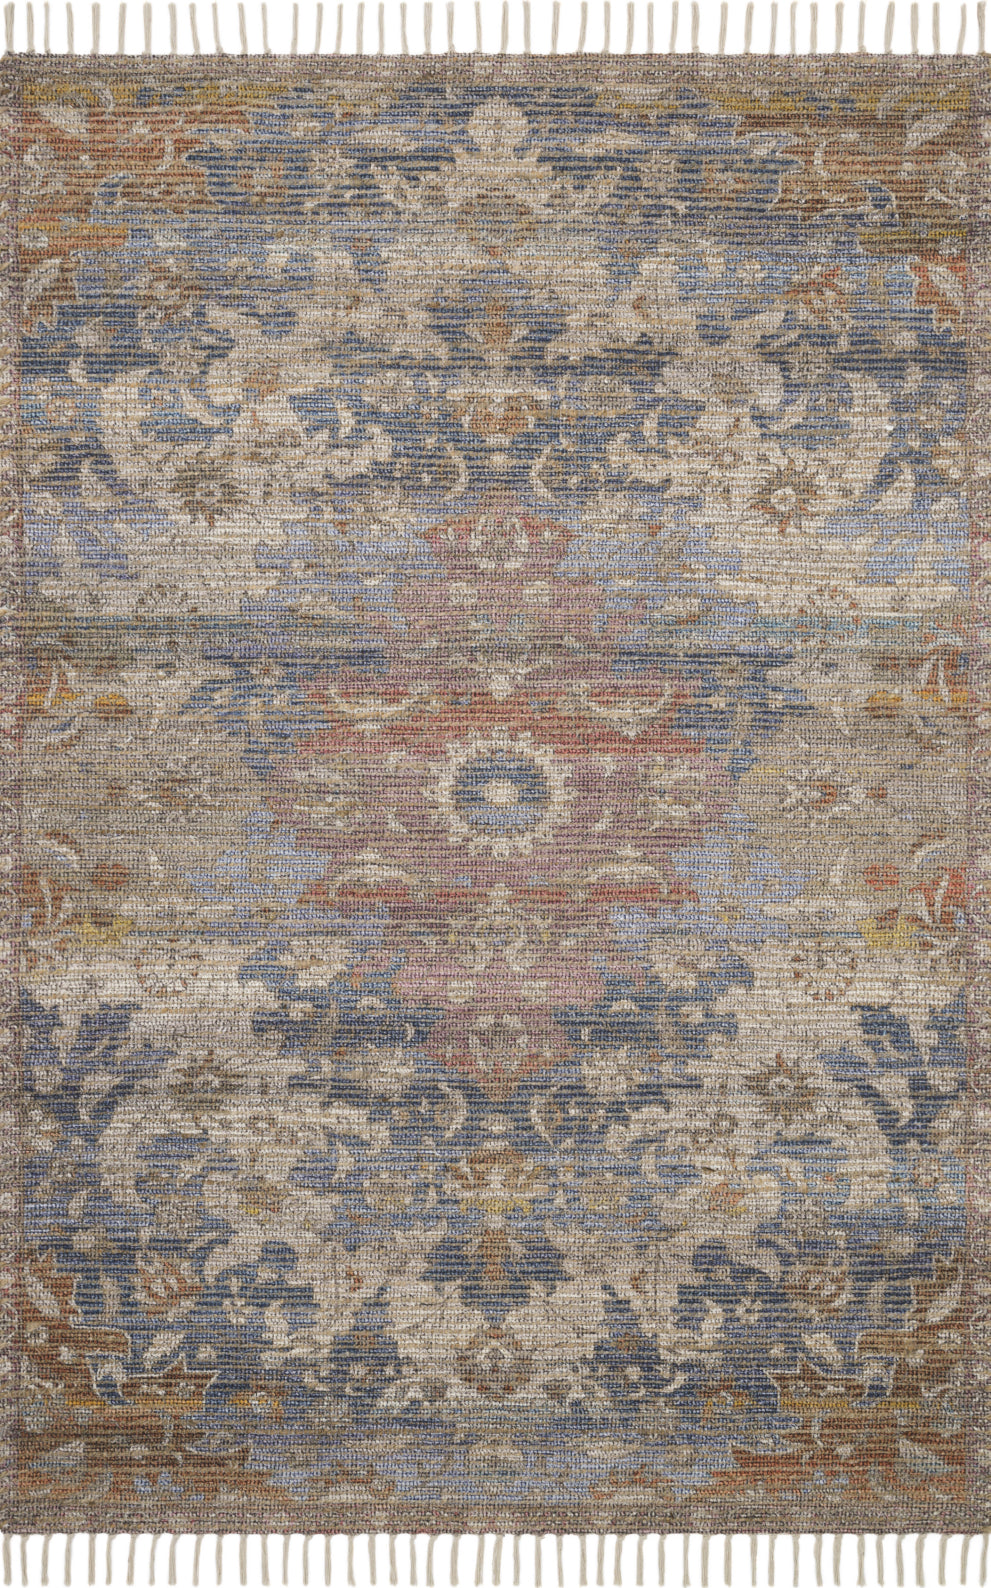 Loloi Cornelia COR-06 Denim/Multi Area Rug by Justina Blakeney main image